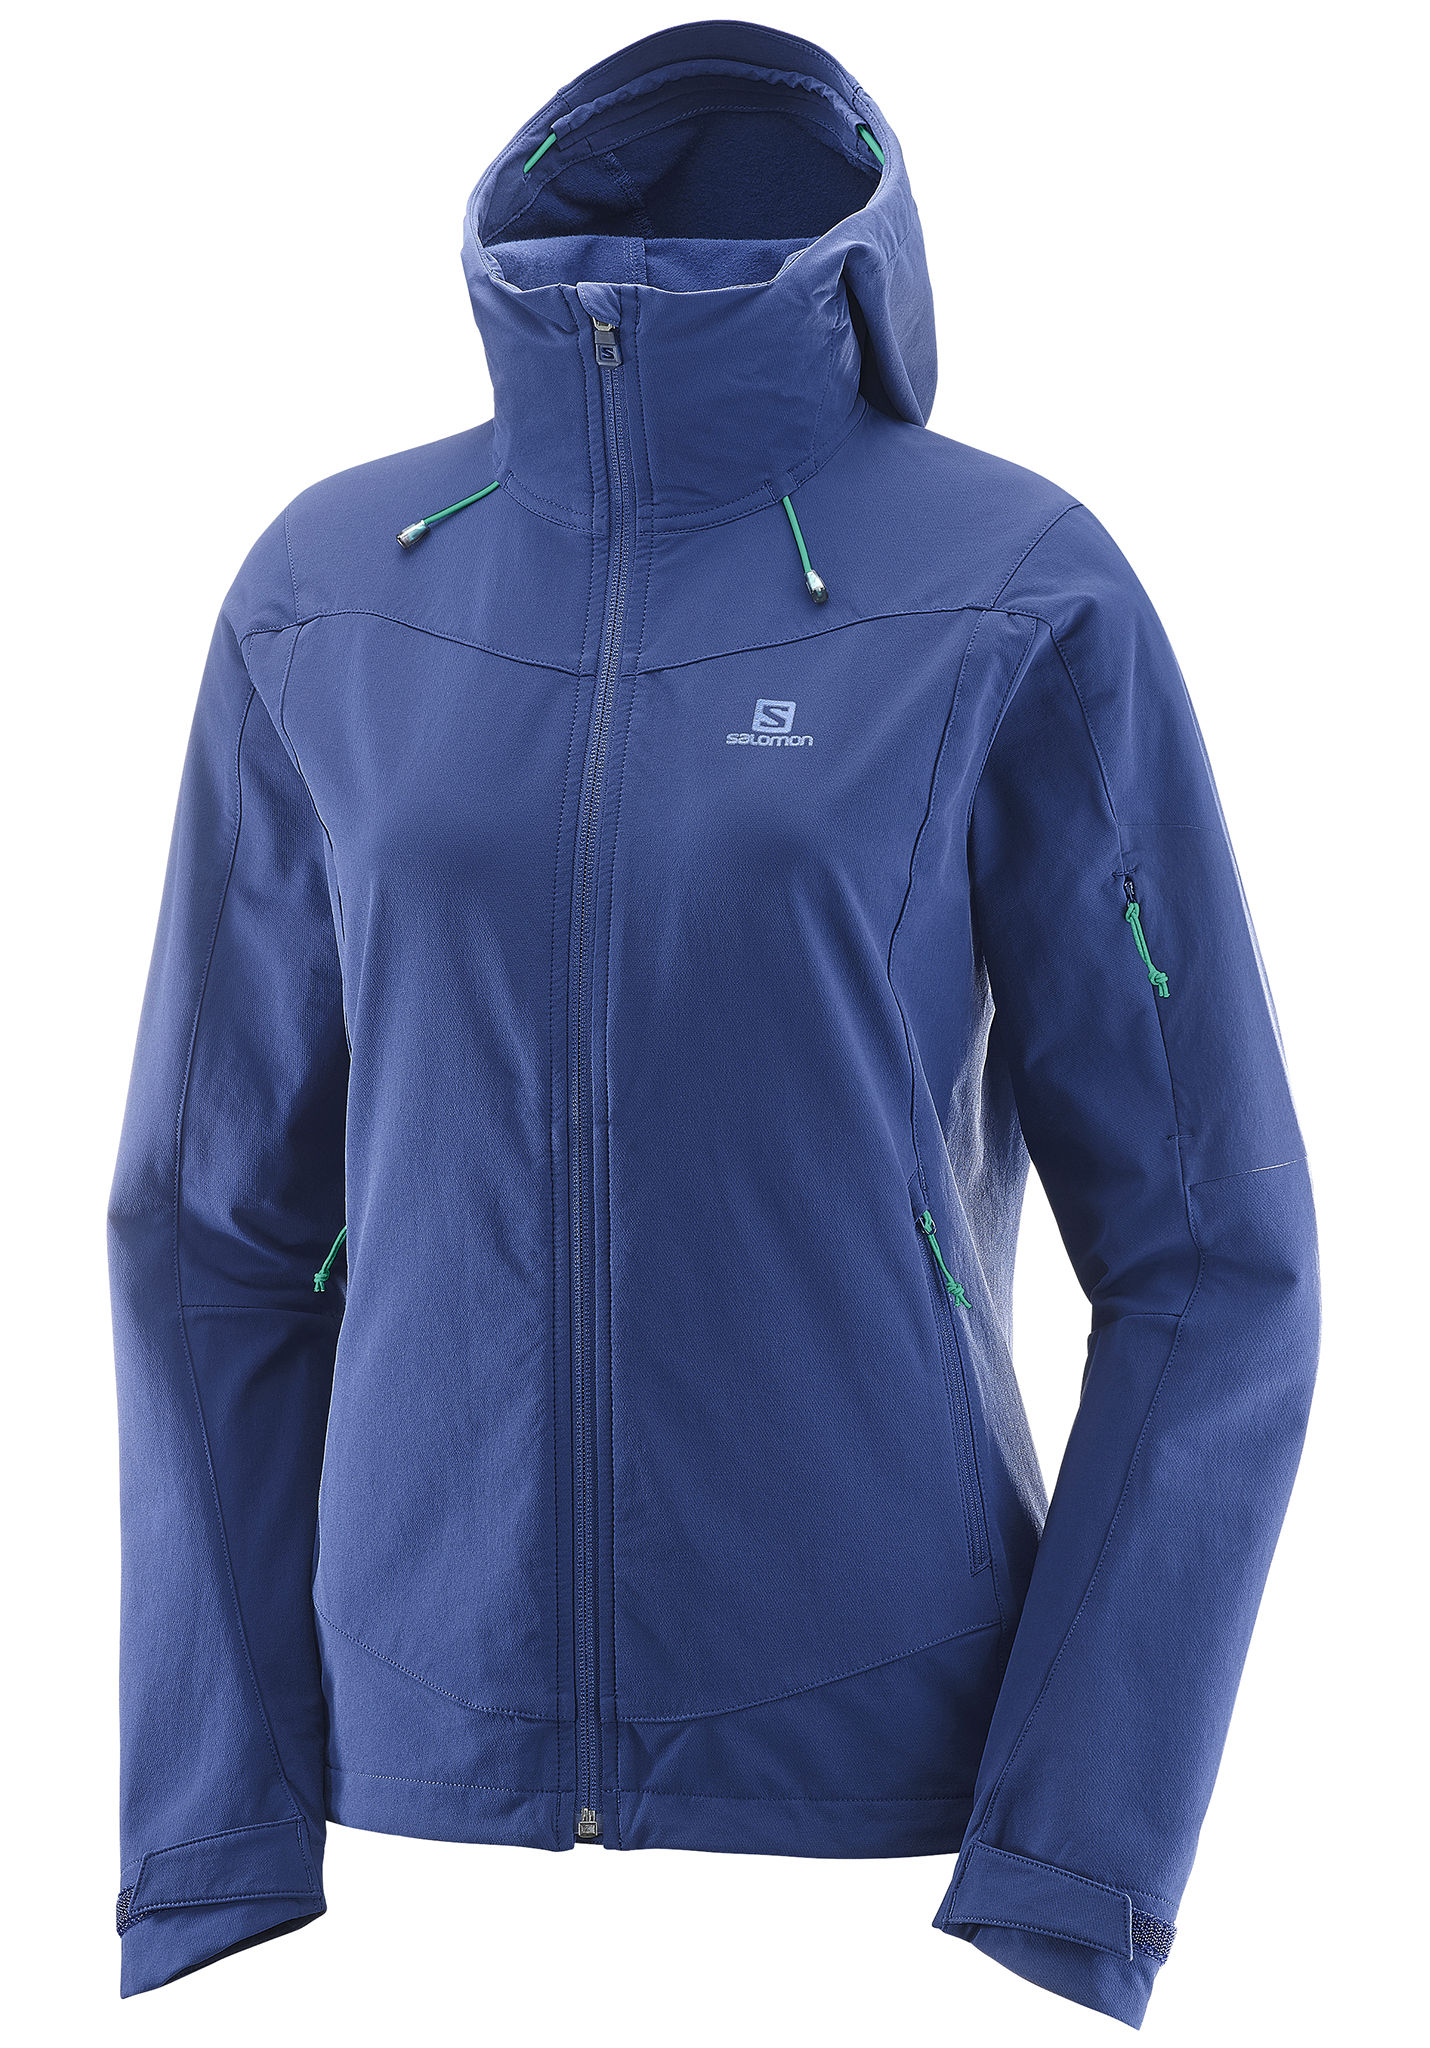 Salomon Ranger Outdoorjacke für Damen Blau Planet Sports tROT0